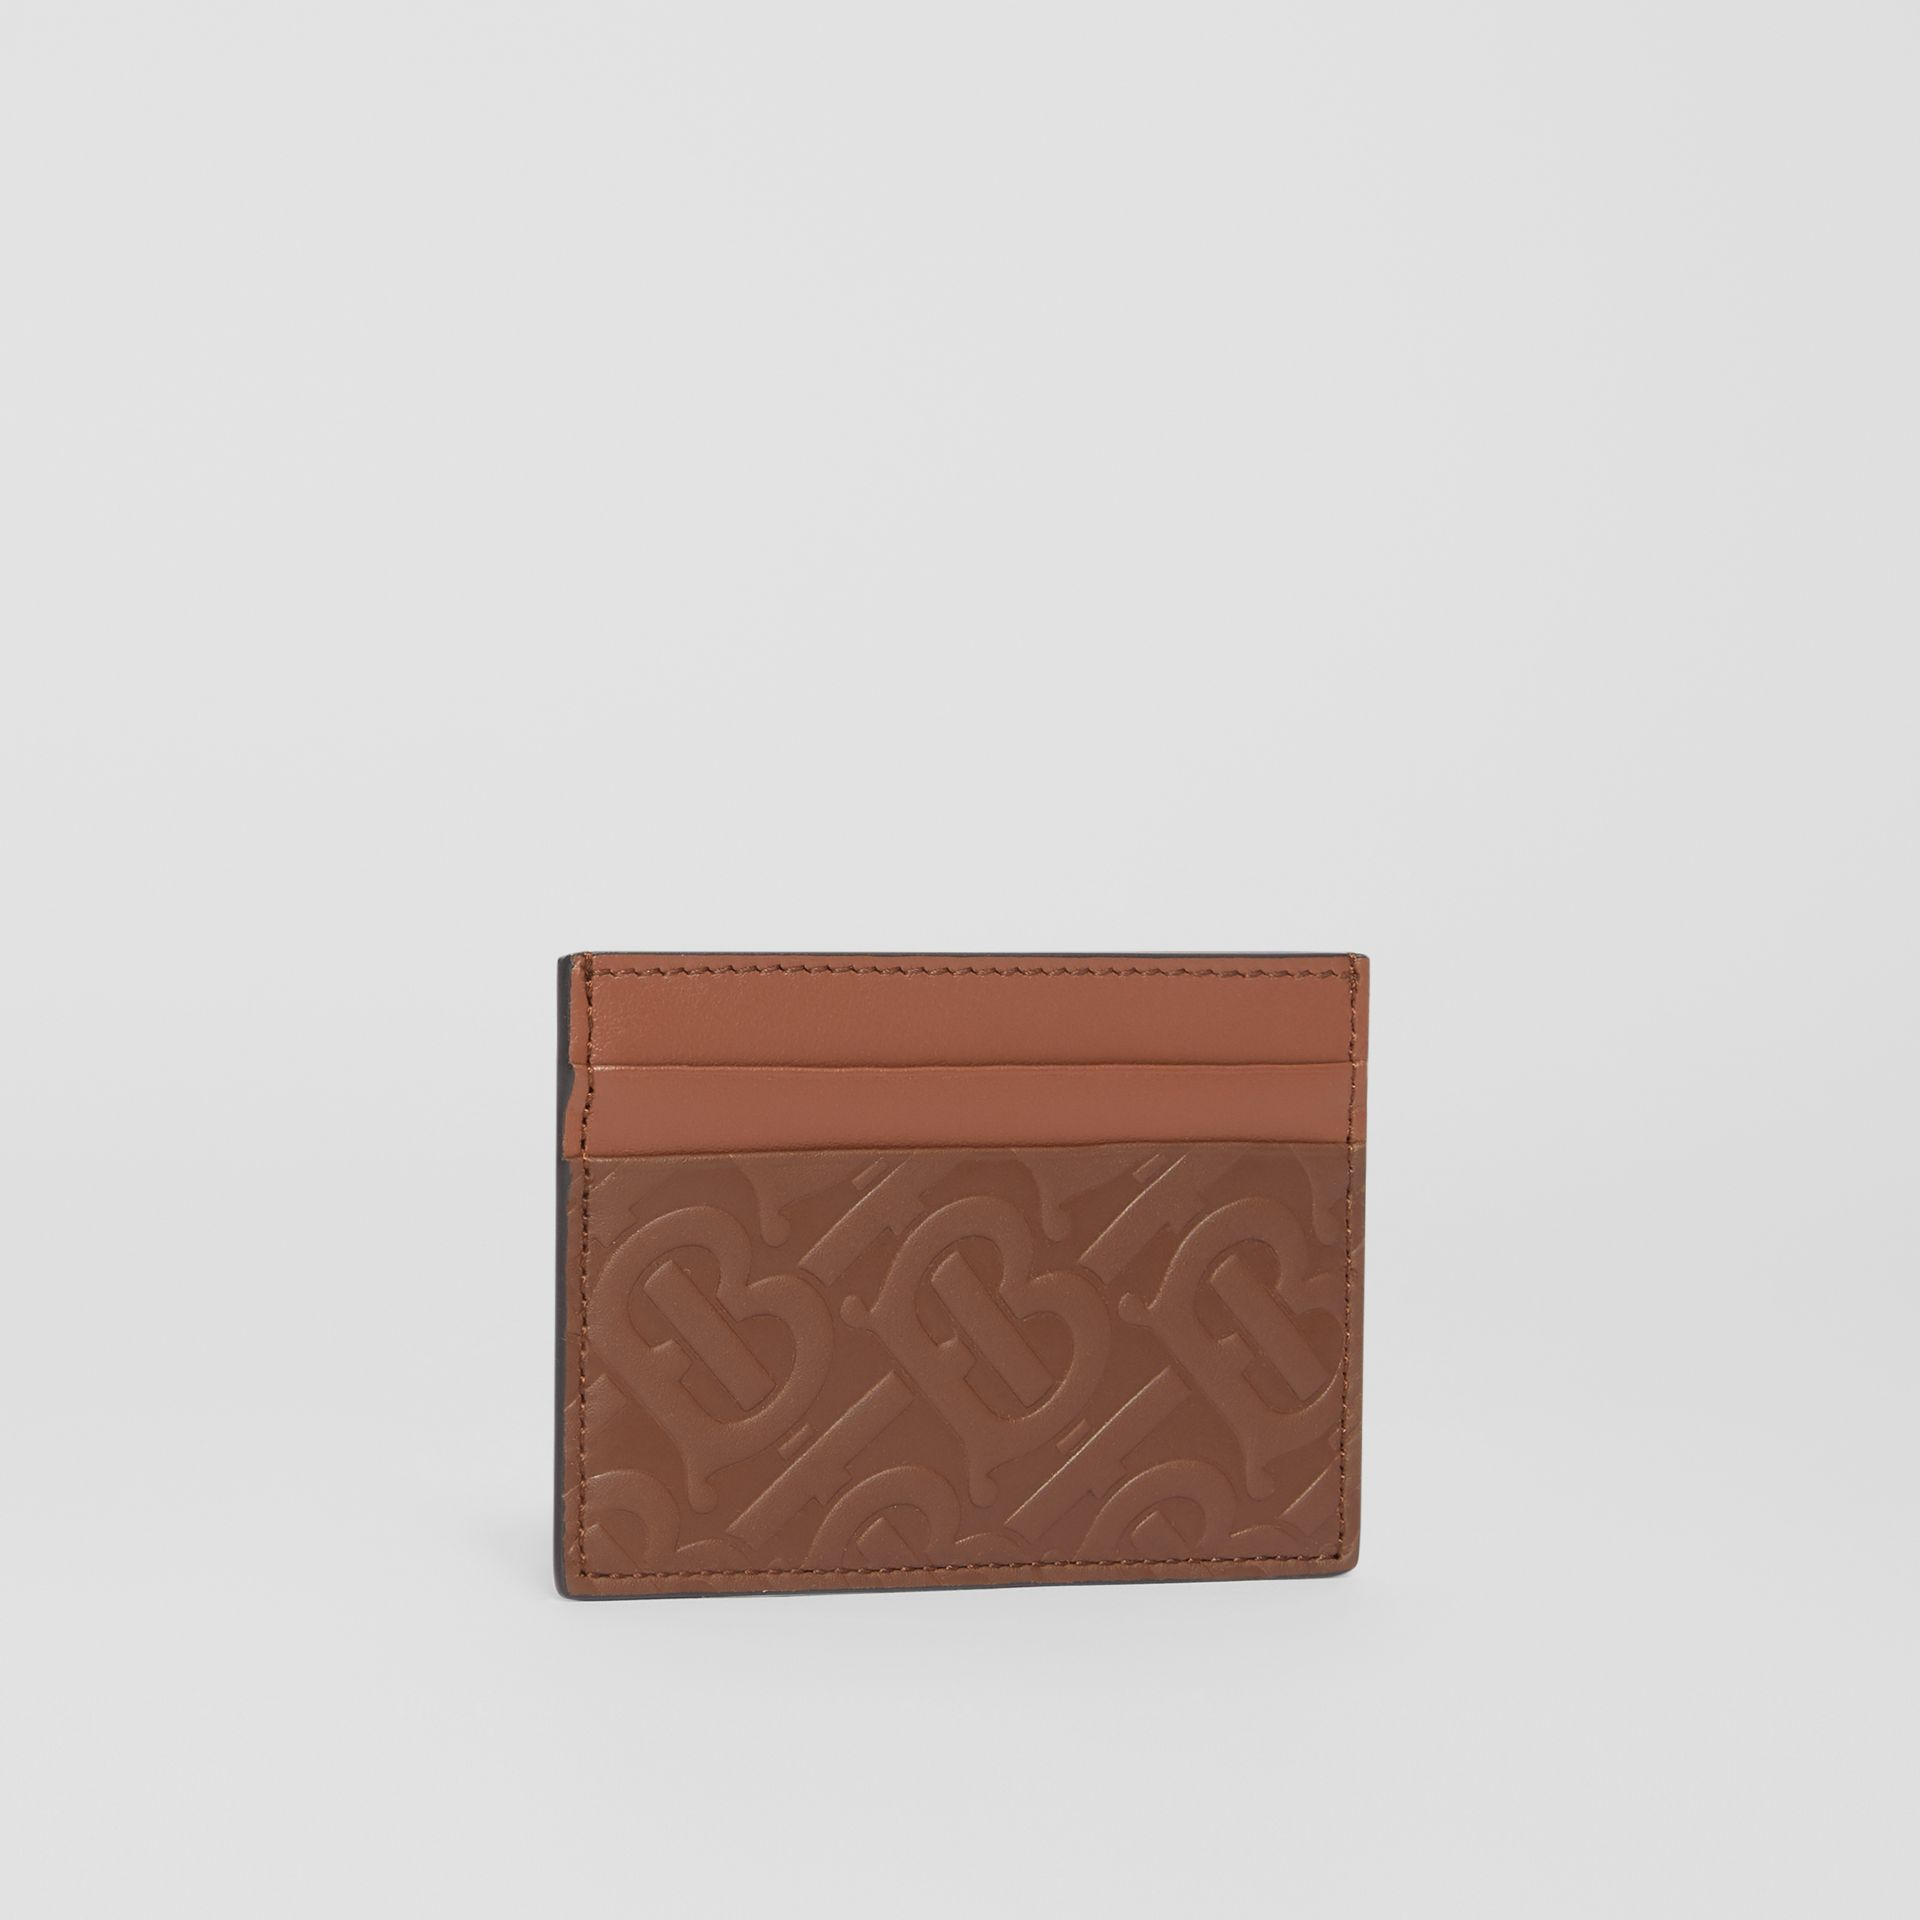 Monogram Leather Card Case in Dark Tan - Men | Burberry United Kingdom - gallery image 3